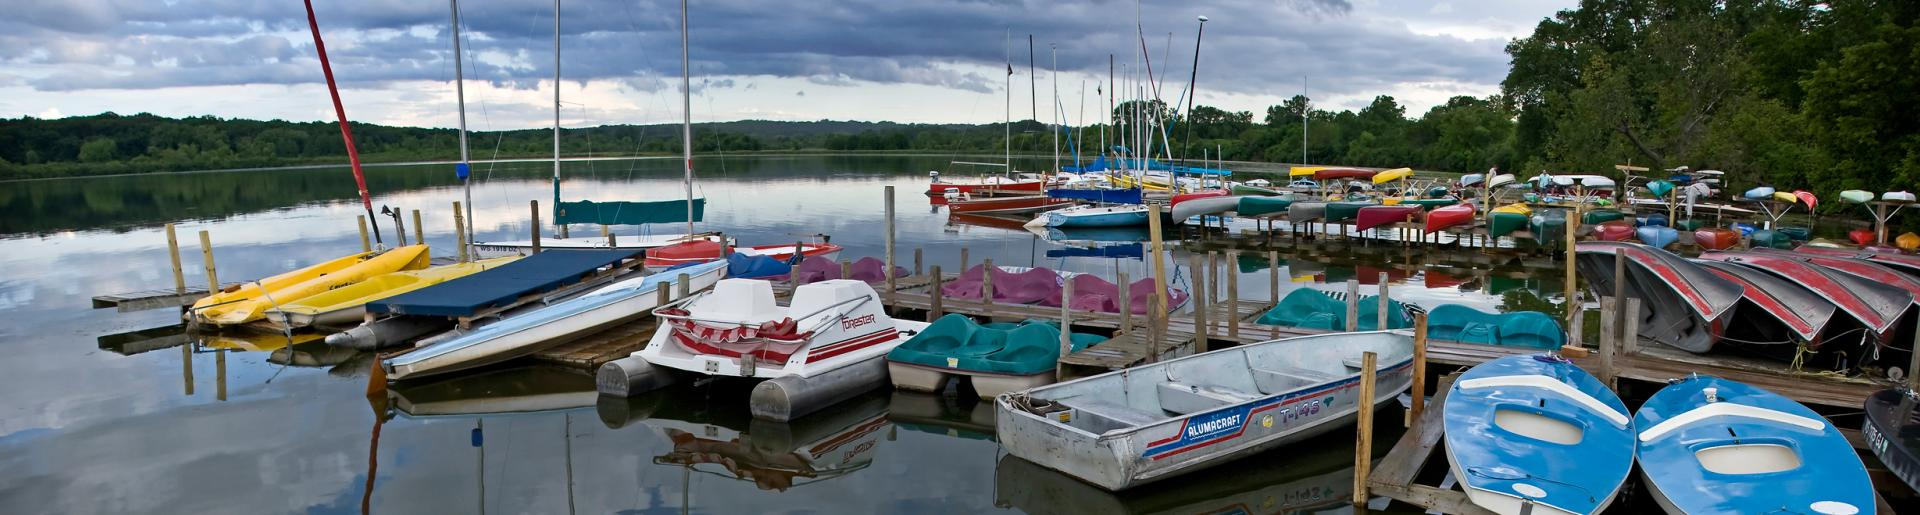 Cruises Boat Rentals On The Lakes In Madison Wi